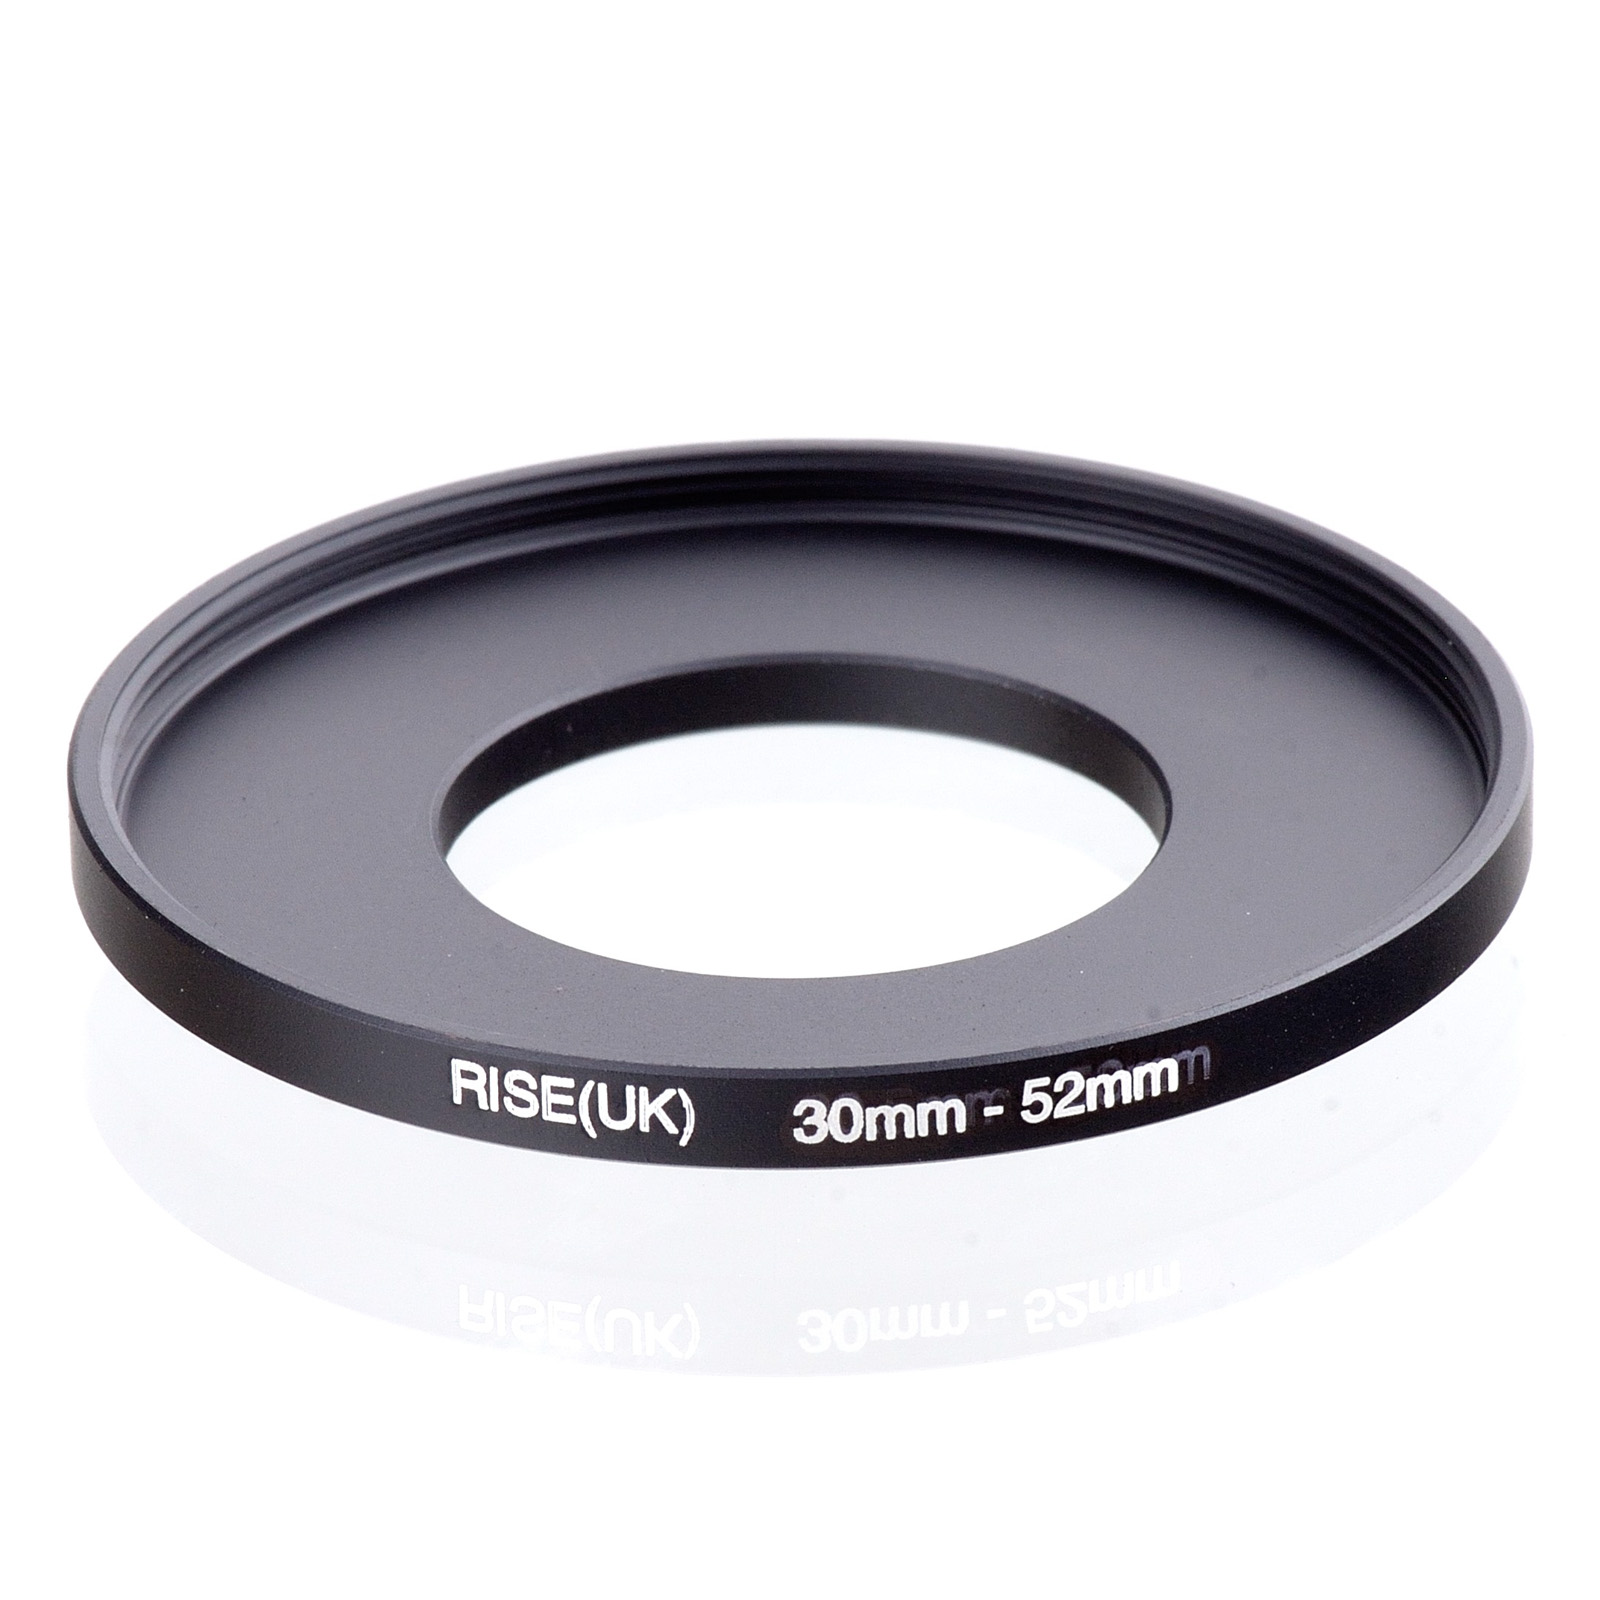 RISE(UK) 30mm-52mm 30-52 Mm 30 To 52 Step Up Filter Ring Adapter